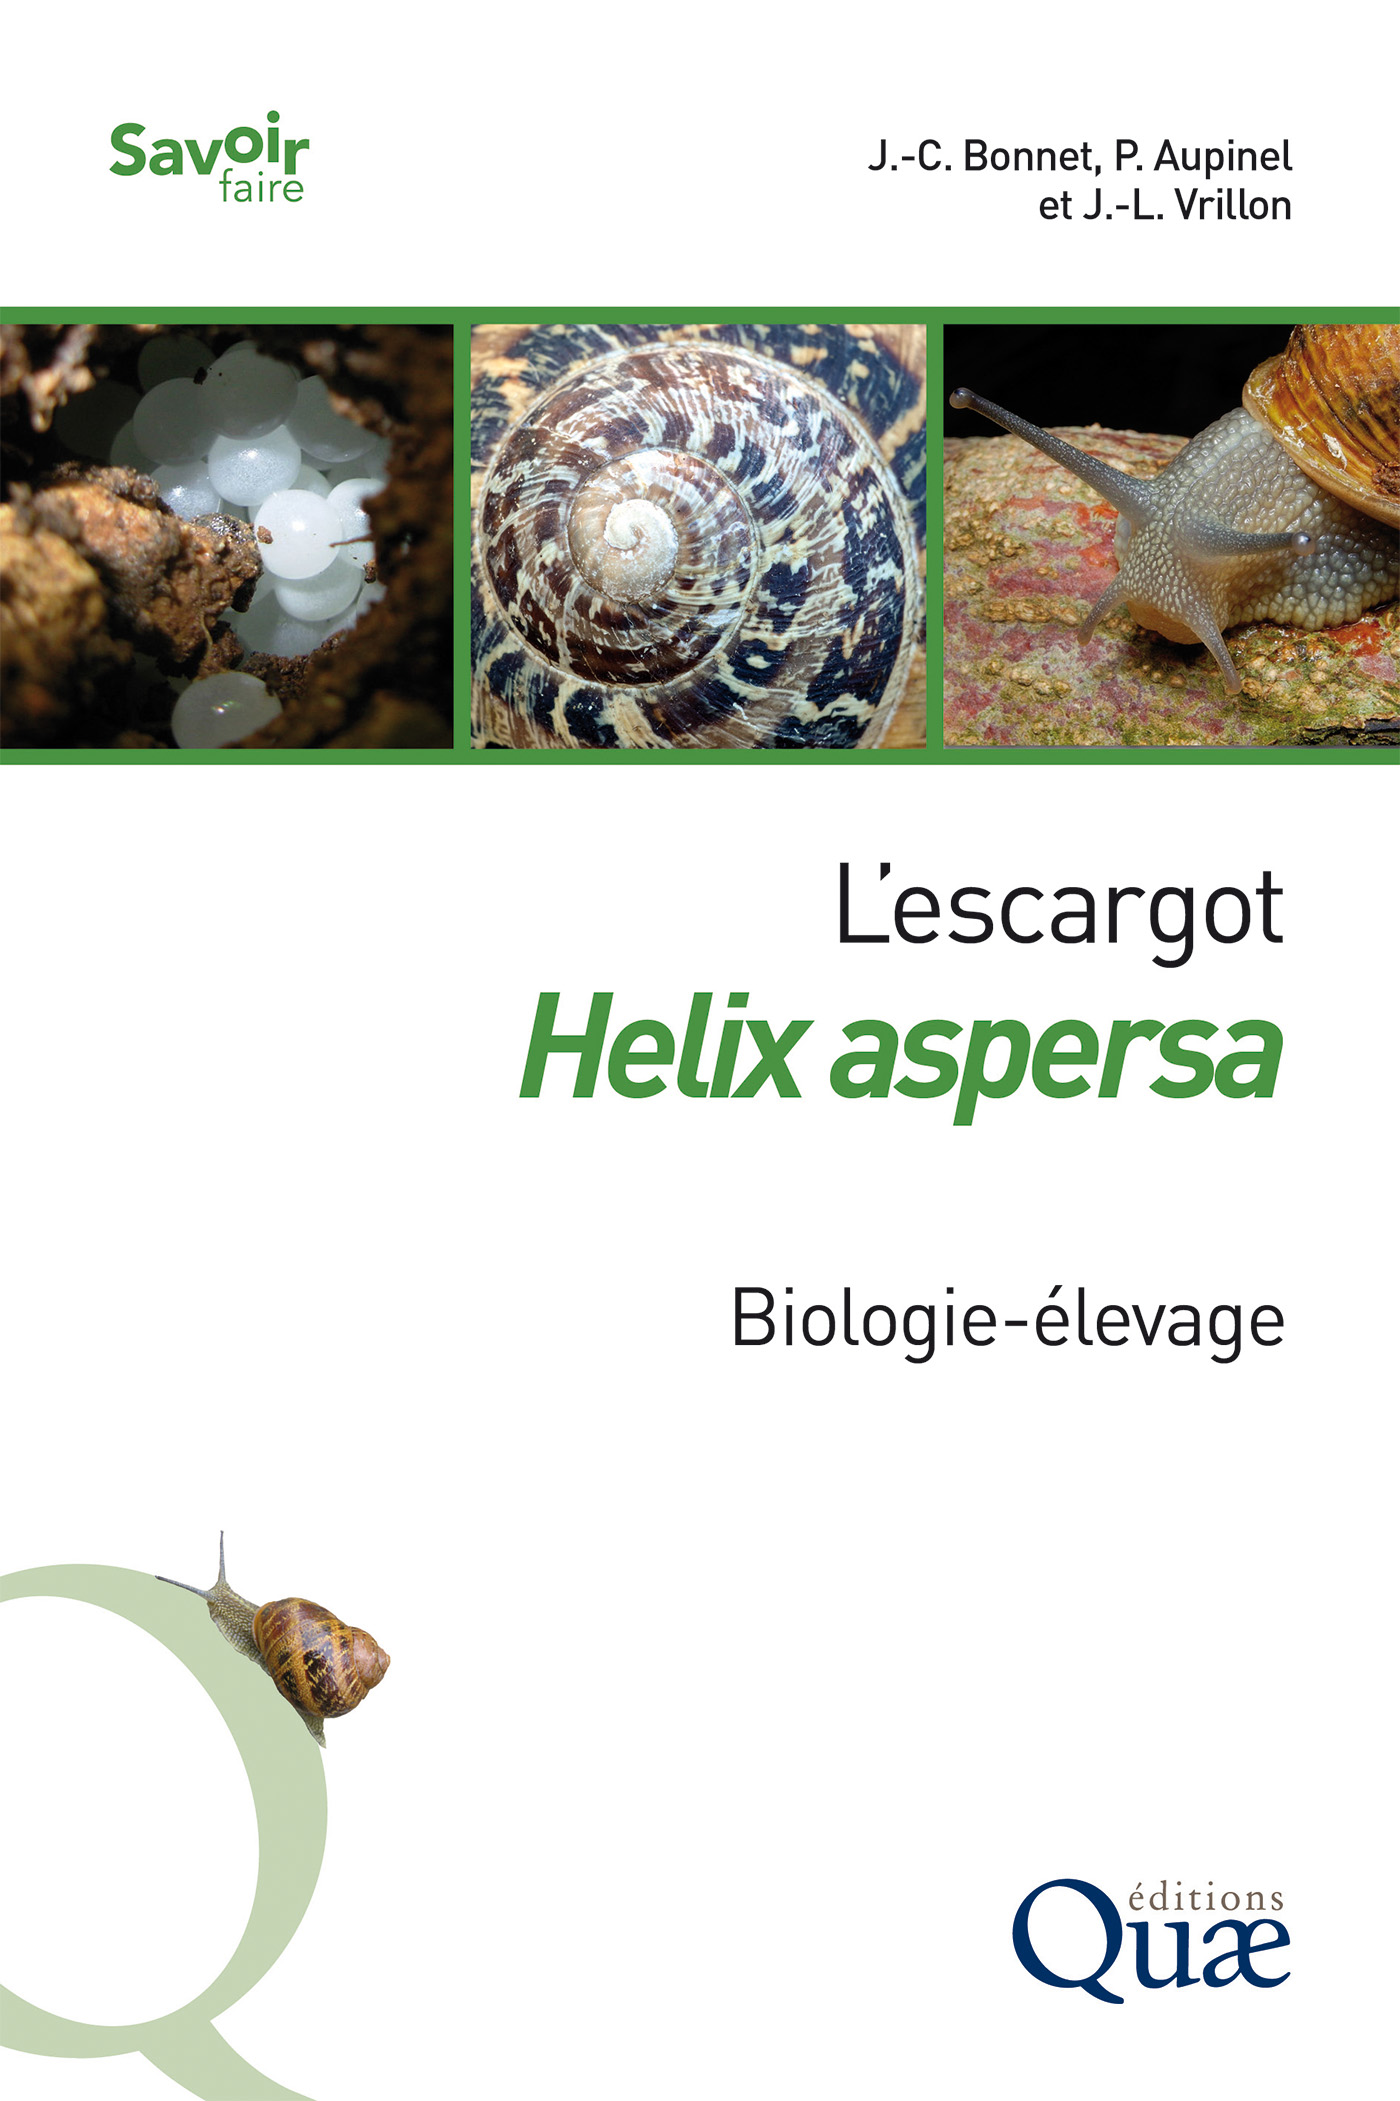 L'escargot Helix aspersa